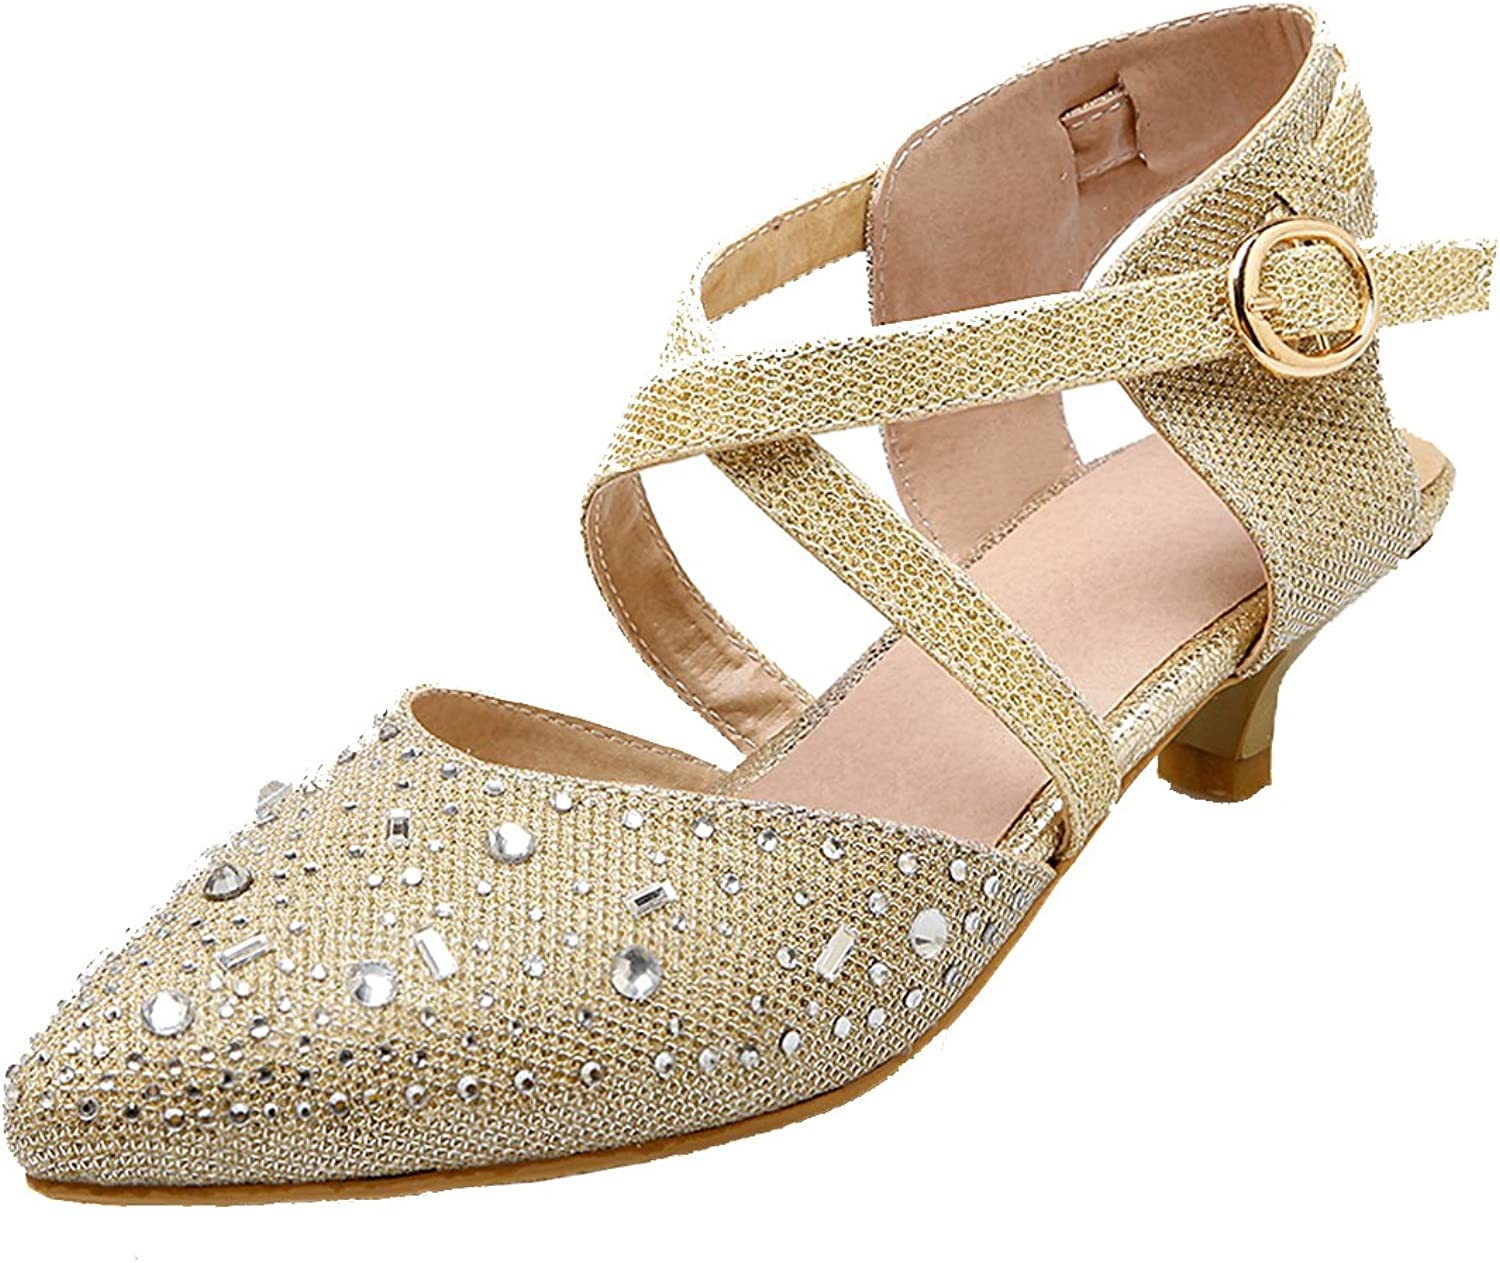 AIYOUMEI Women's FashionPointed Toe Pumps Glitter shoes Kitten Heel Ankle Strap Sandals with Rhinestones